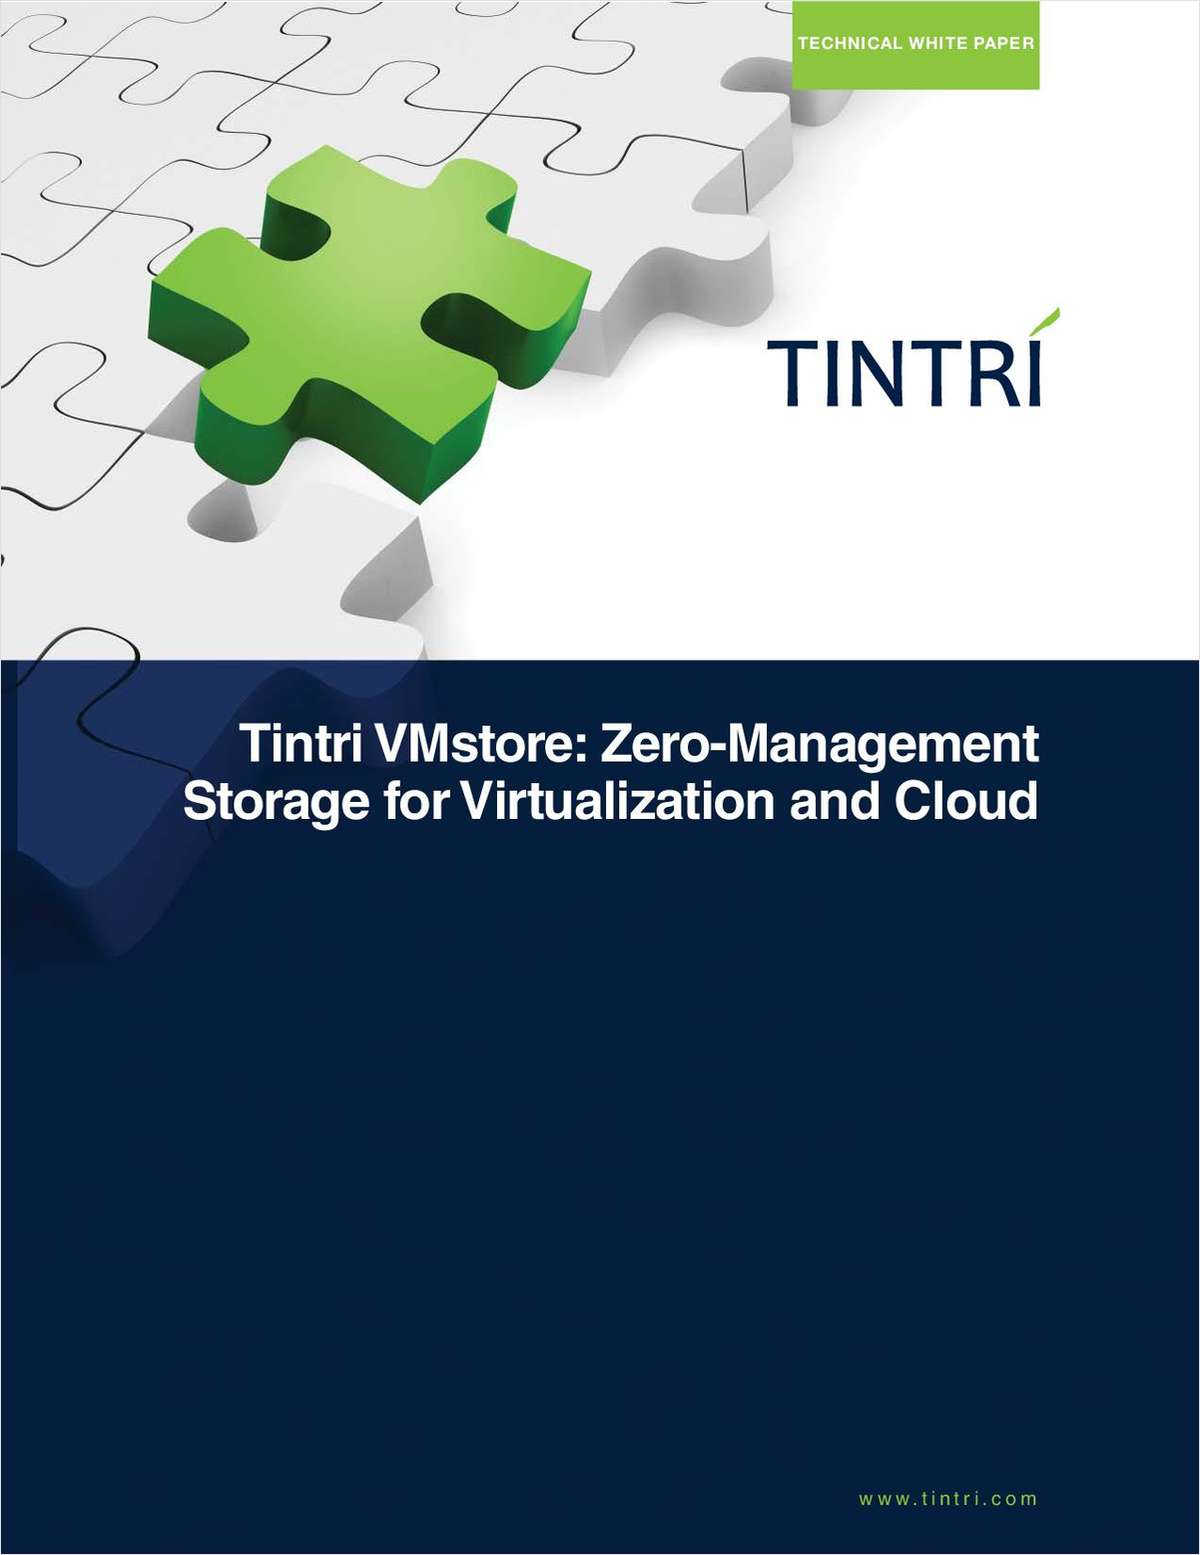 Tintri VMstore: Zero Management Storage for Virtualization and Cloud